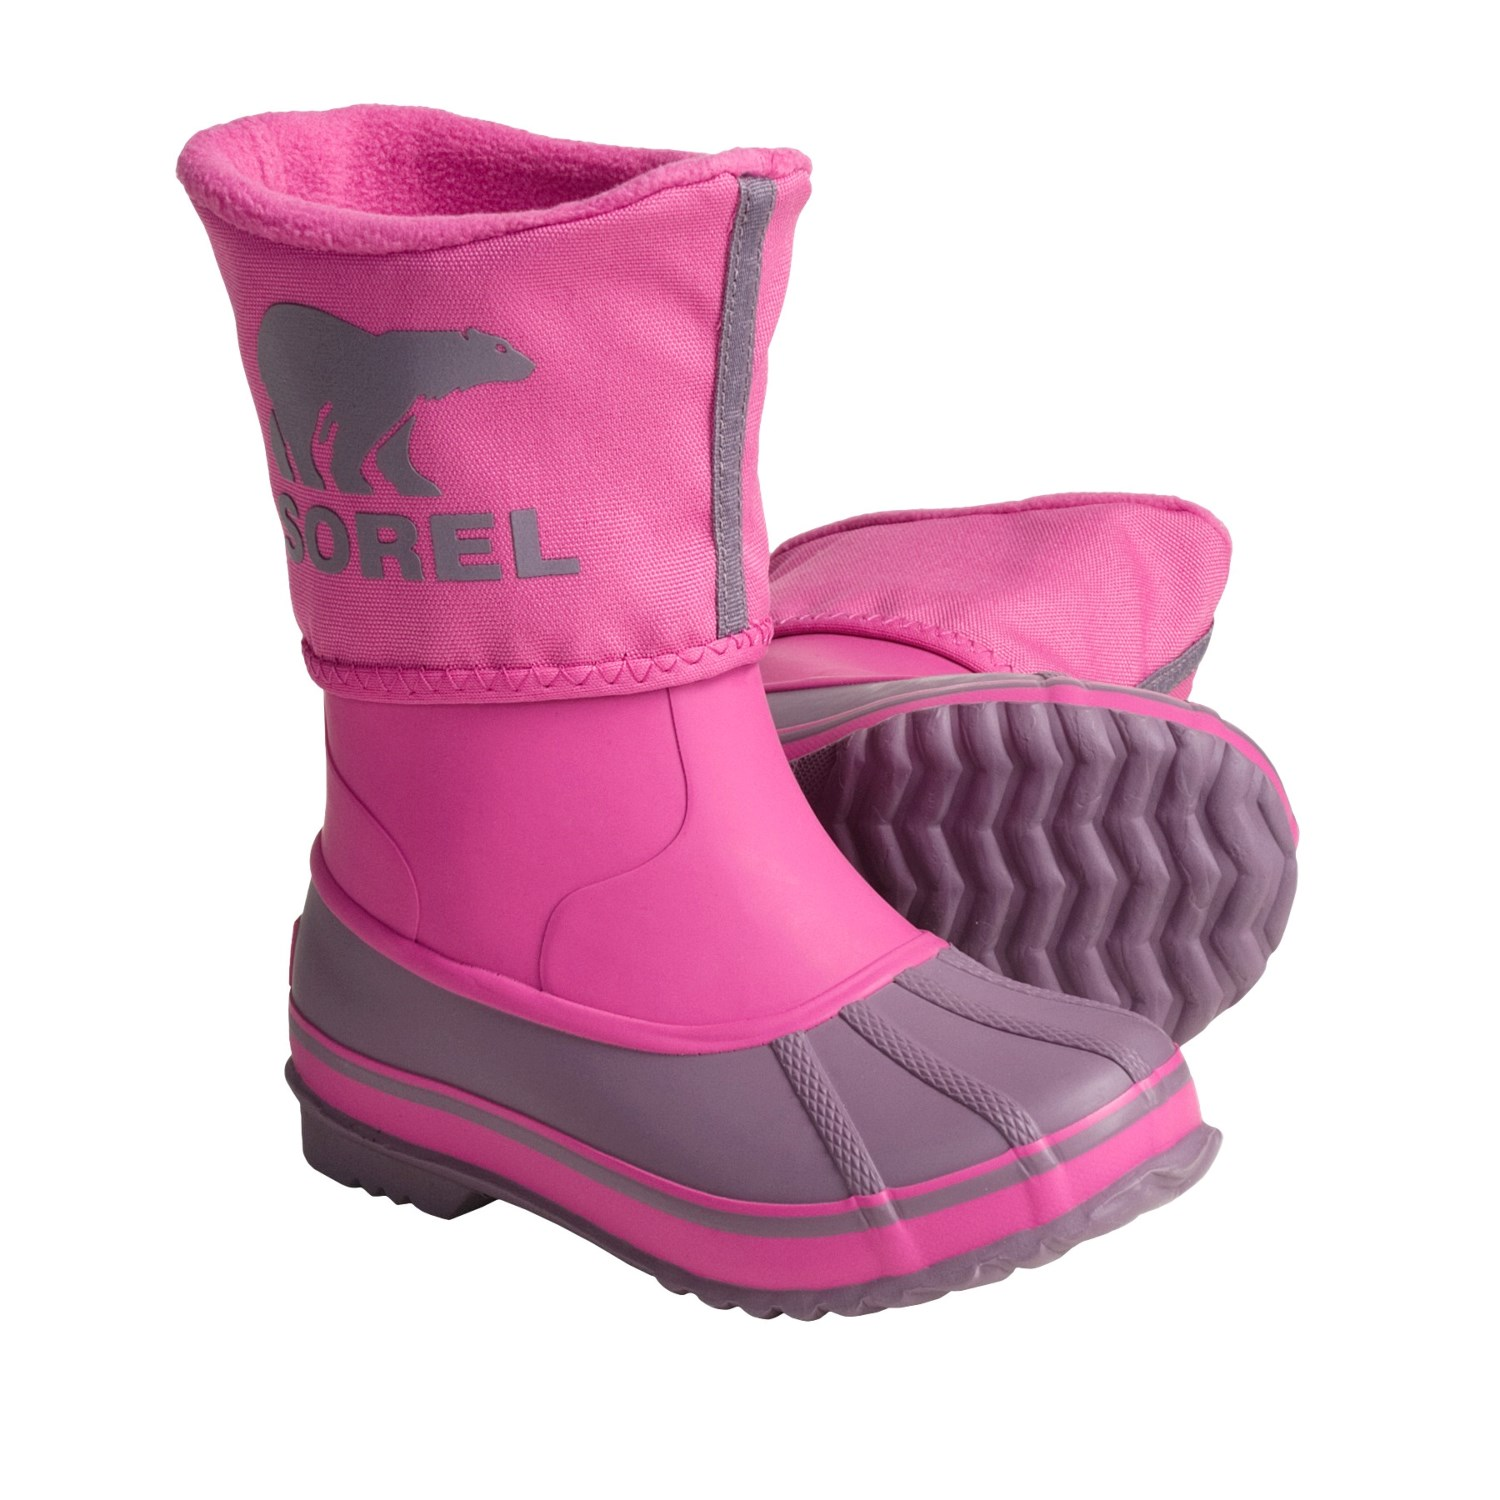 Sorel Promo Codes for November Save 55% w/ 8 active Sorel Promo Codes, Sales and Third-party Deals. Today's best algebracapacitywt.tk Coupon Code: Save 55% Off on Sorel Footwear at Sorel. Get crowdsourced + verified coupons at Dealspotr/5(10).